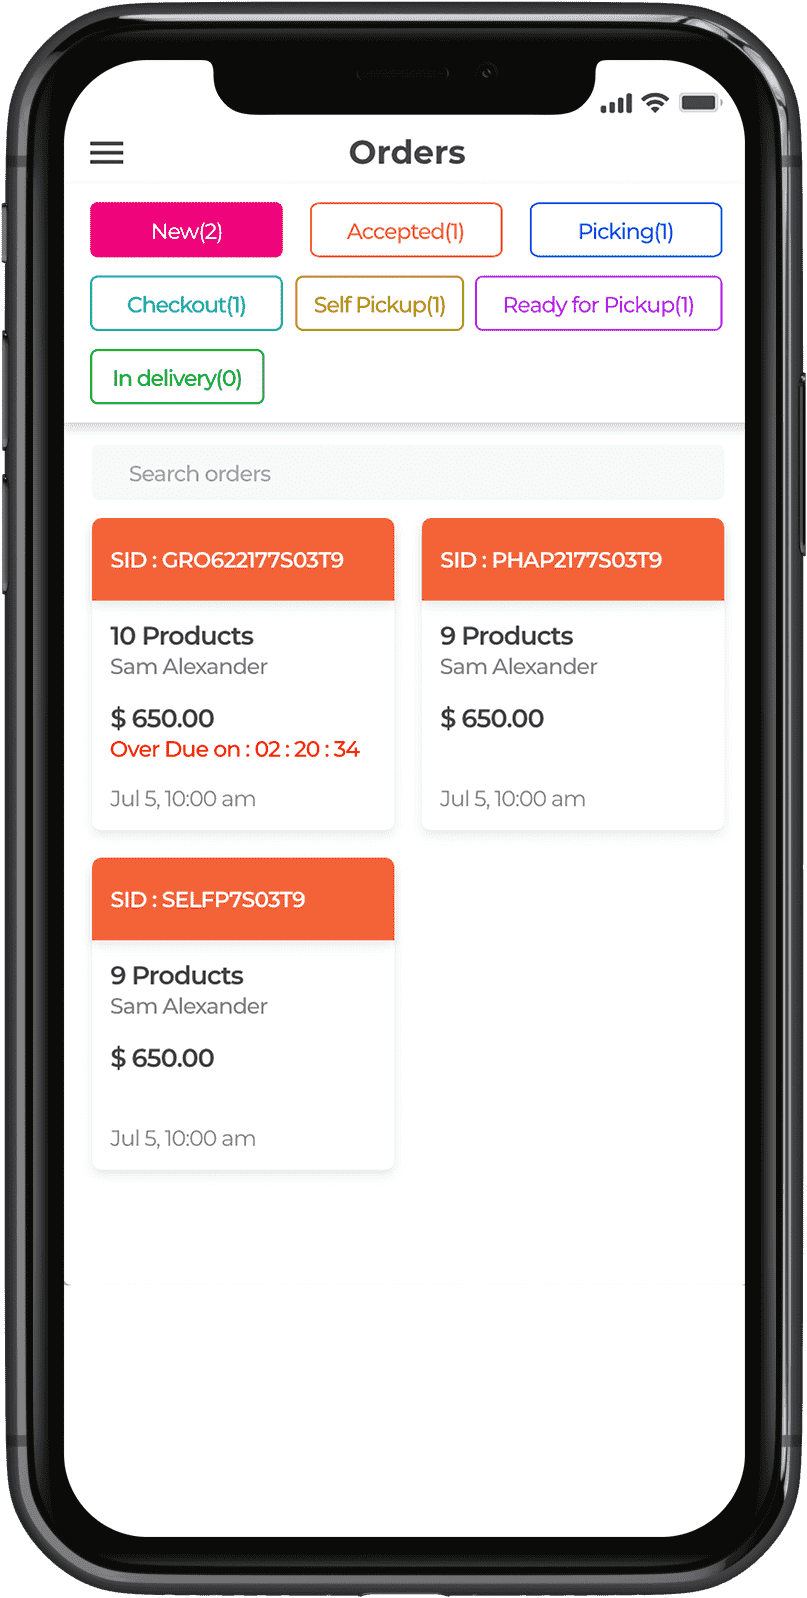 new-order-tab-in-grocery-delivery-picker-app.png